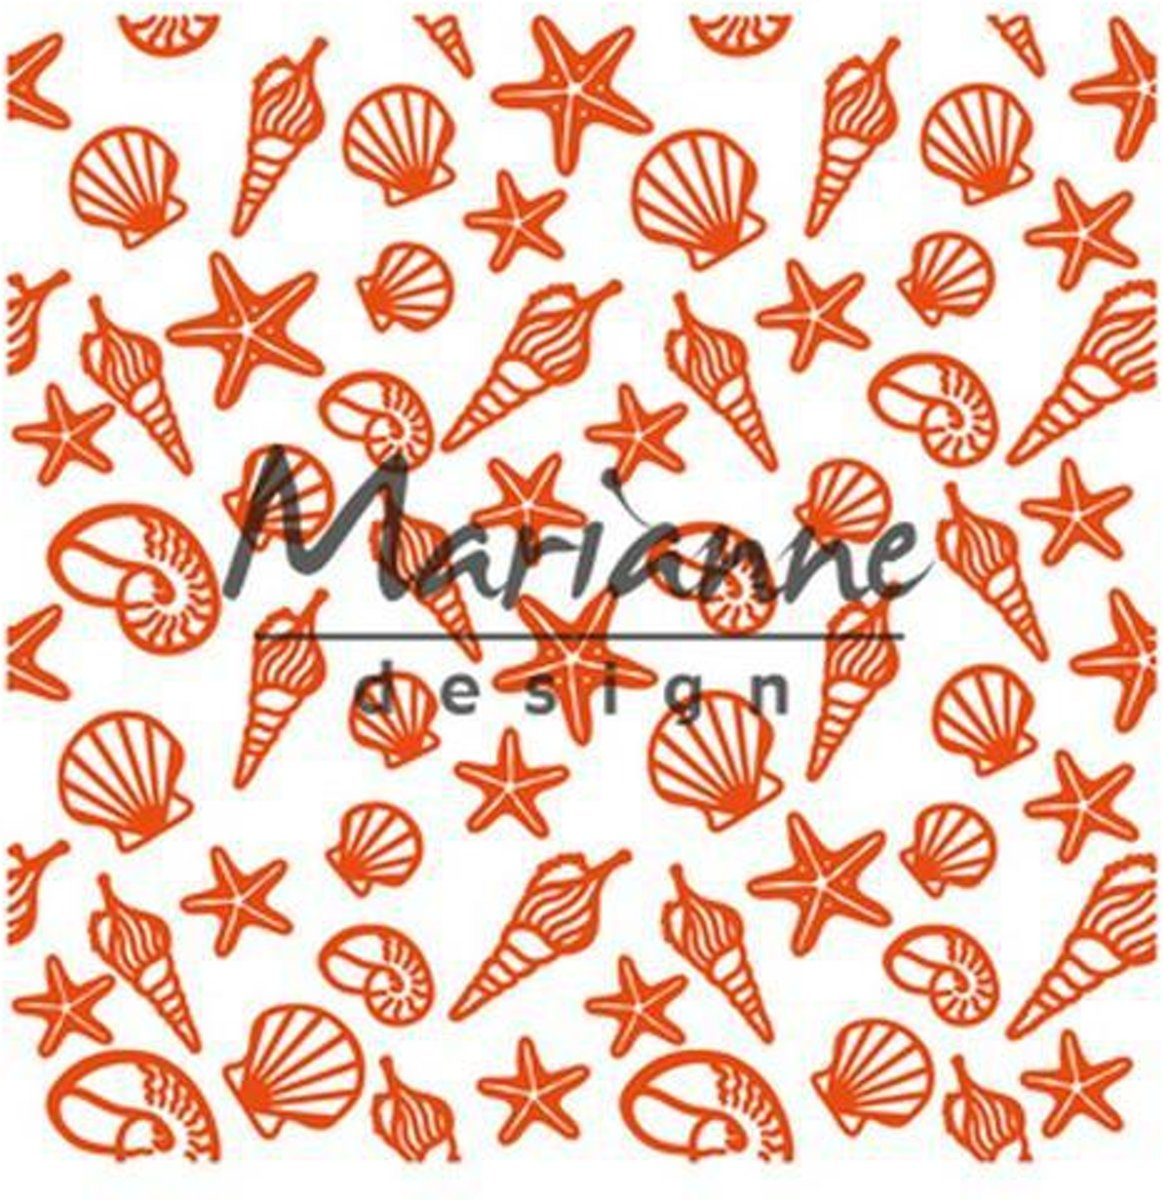 Design Folder Sea Shells kopen